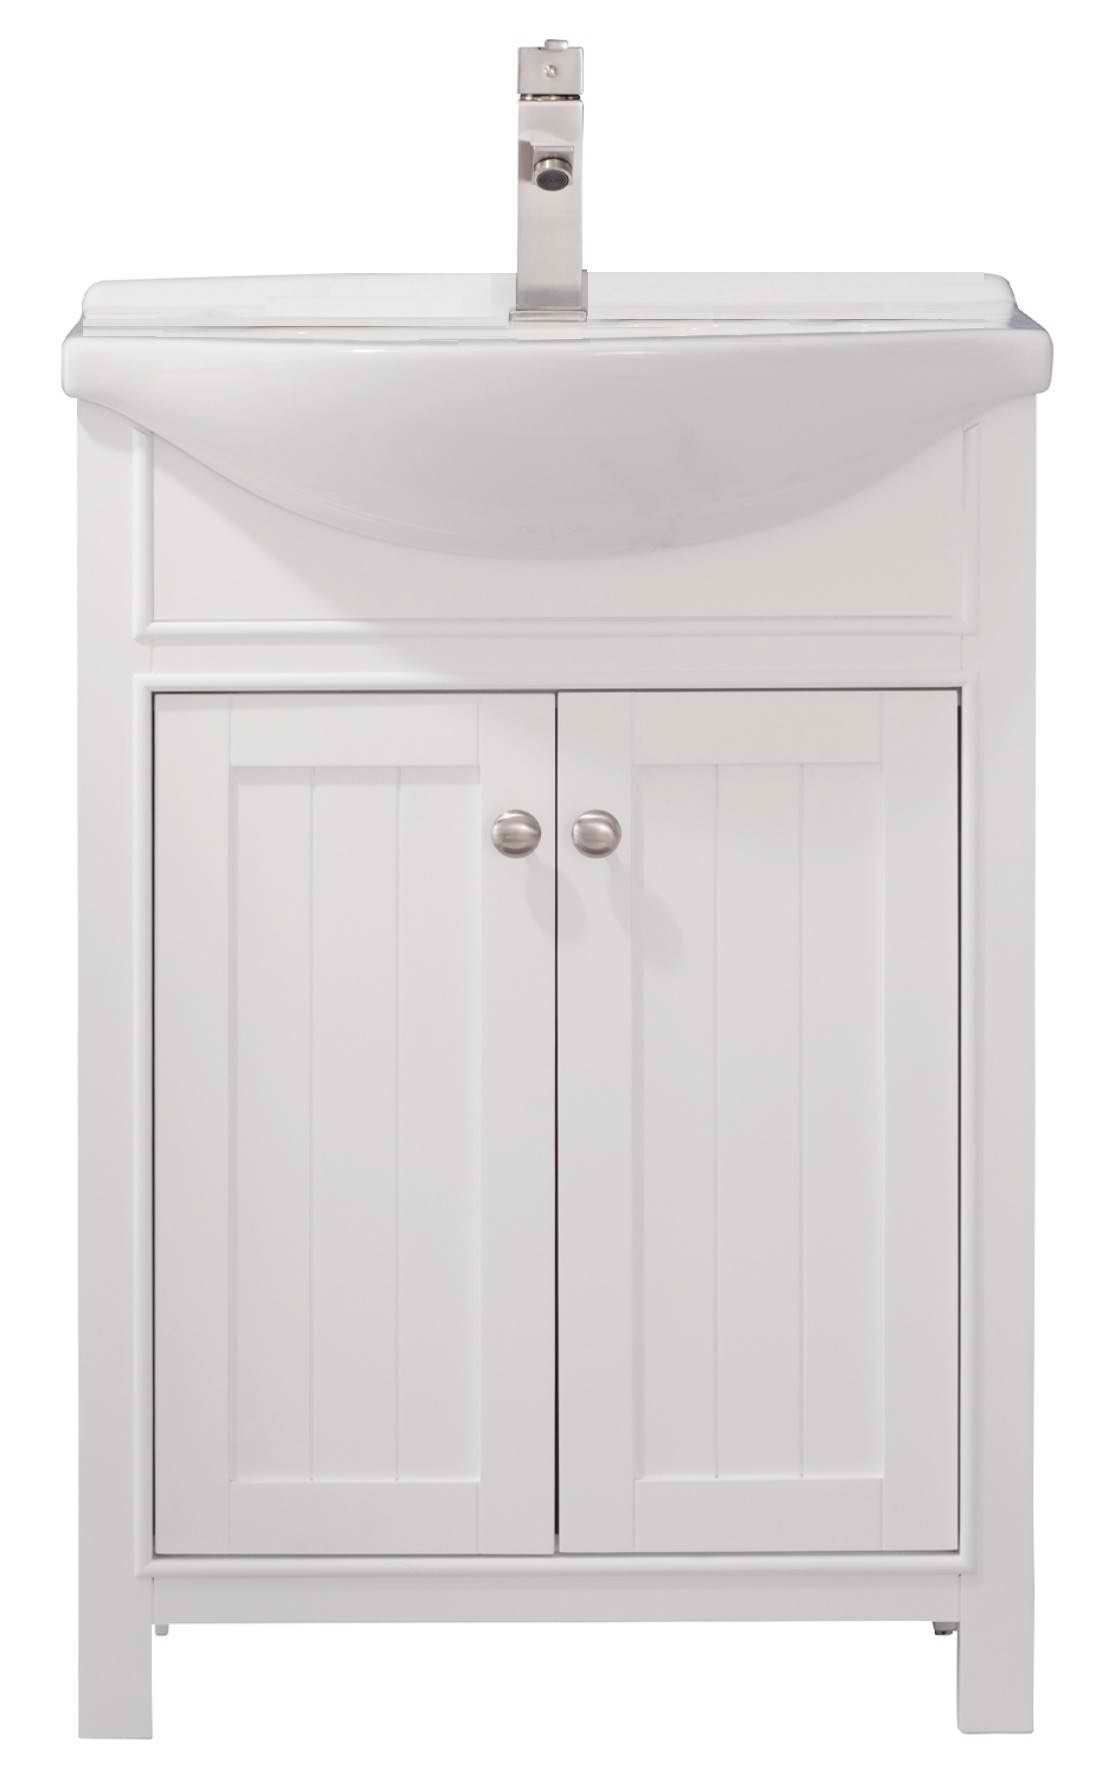 "Transitional 24"" Single Sink Vanity with Porcelain Integrated Counterop and Sink in White Finish"